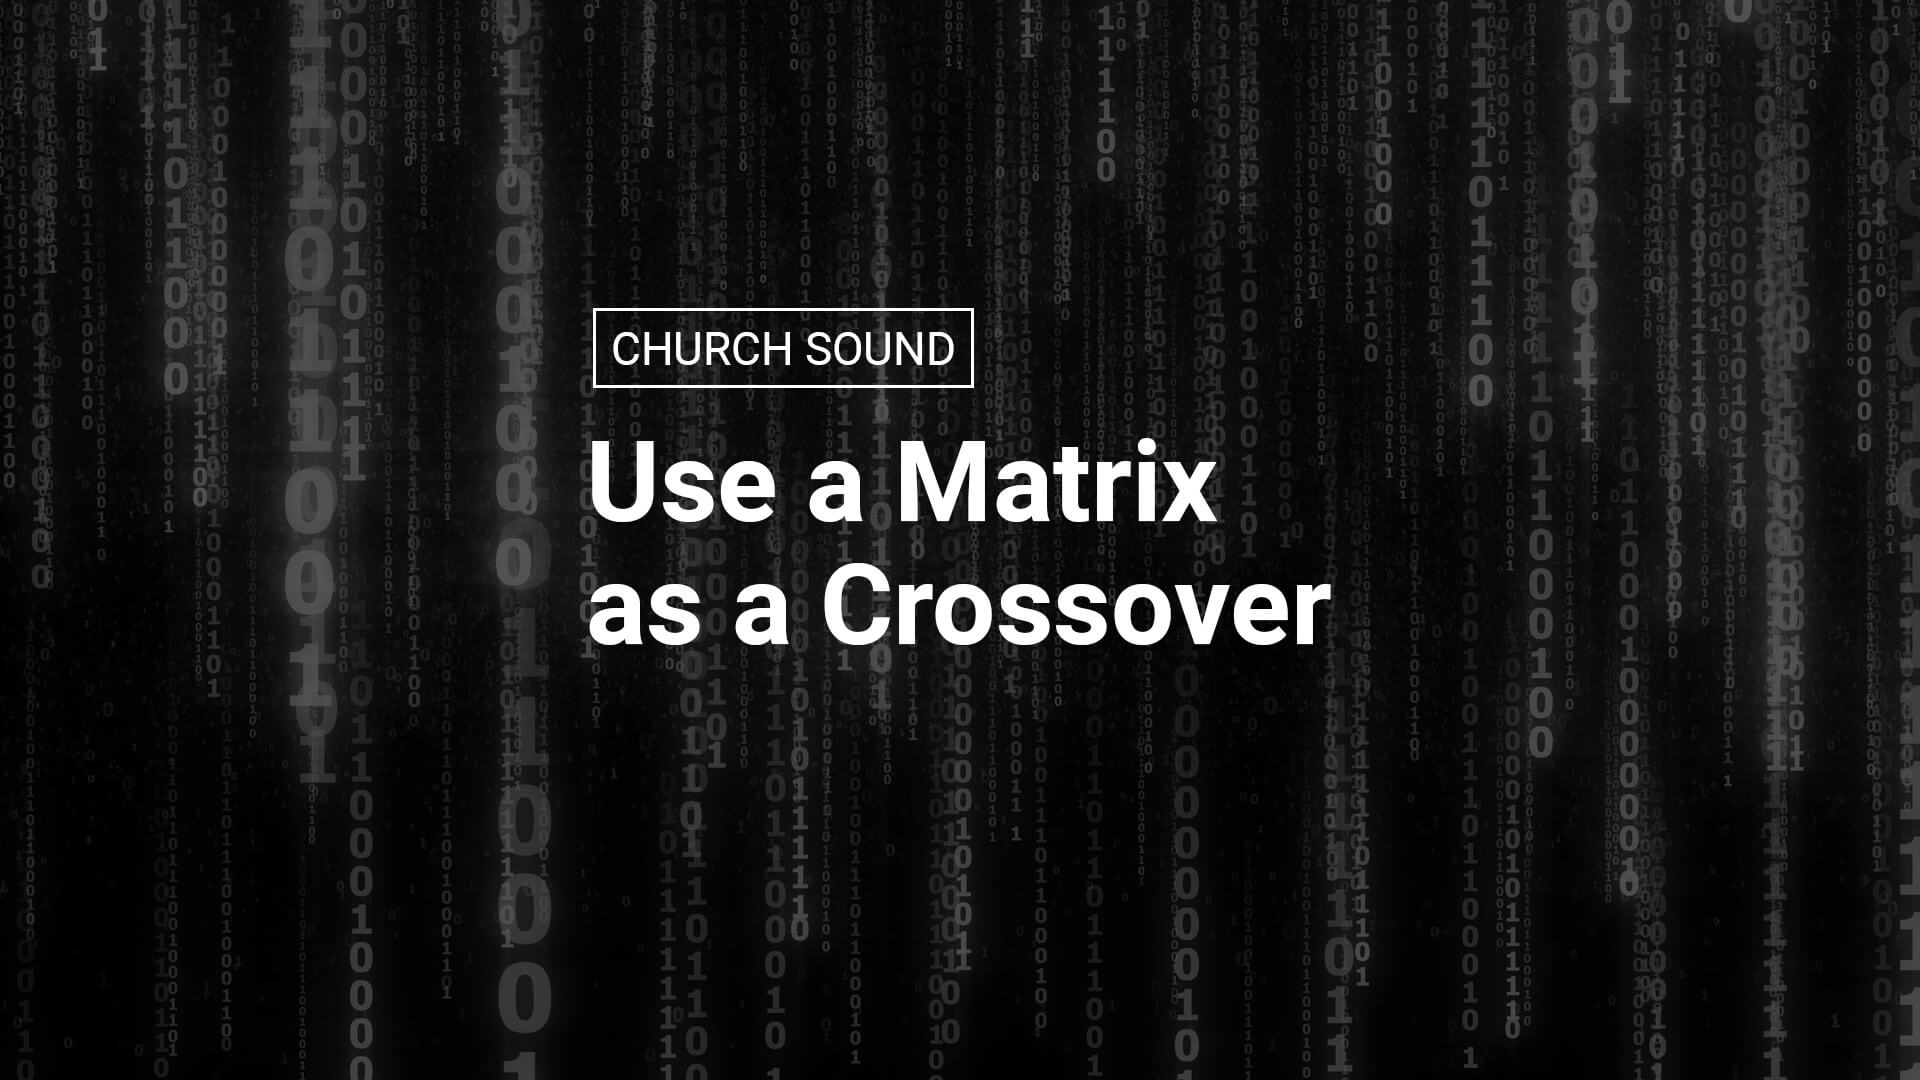 How to Use a Matrix as a Crossover